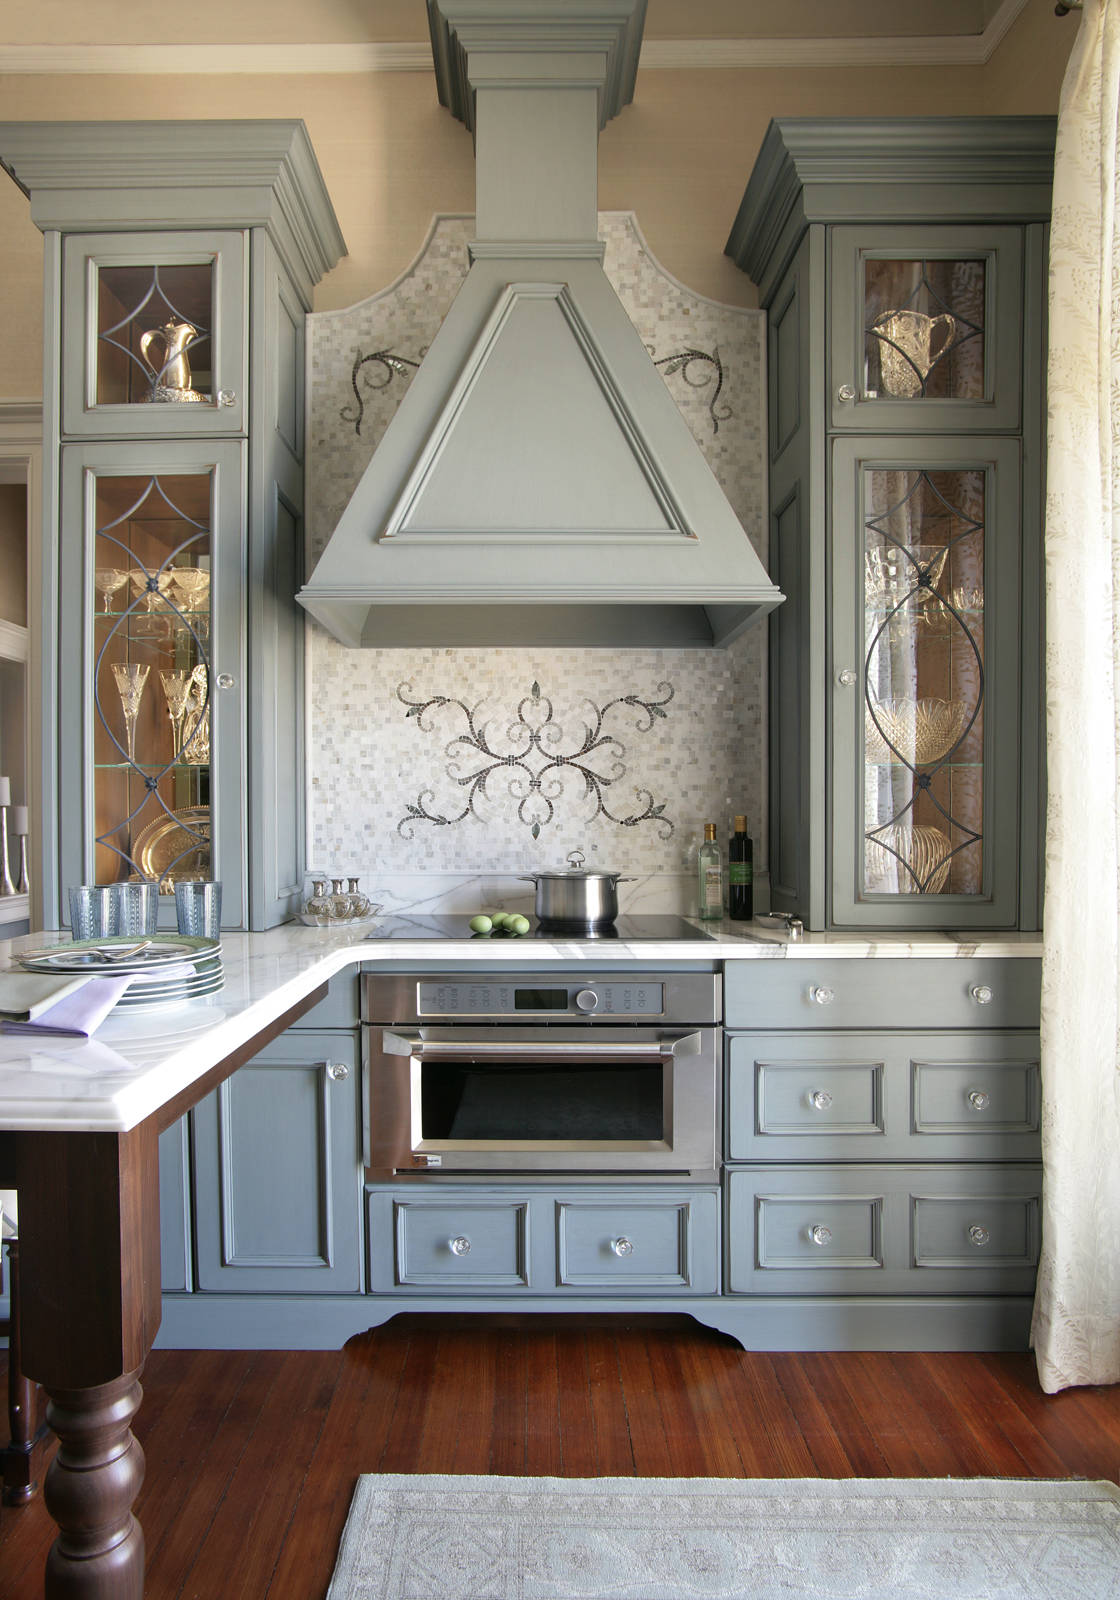 75 Beautiful Small Victorian Kitchen Pictures Ideas May 2021 Houzz